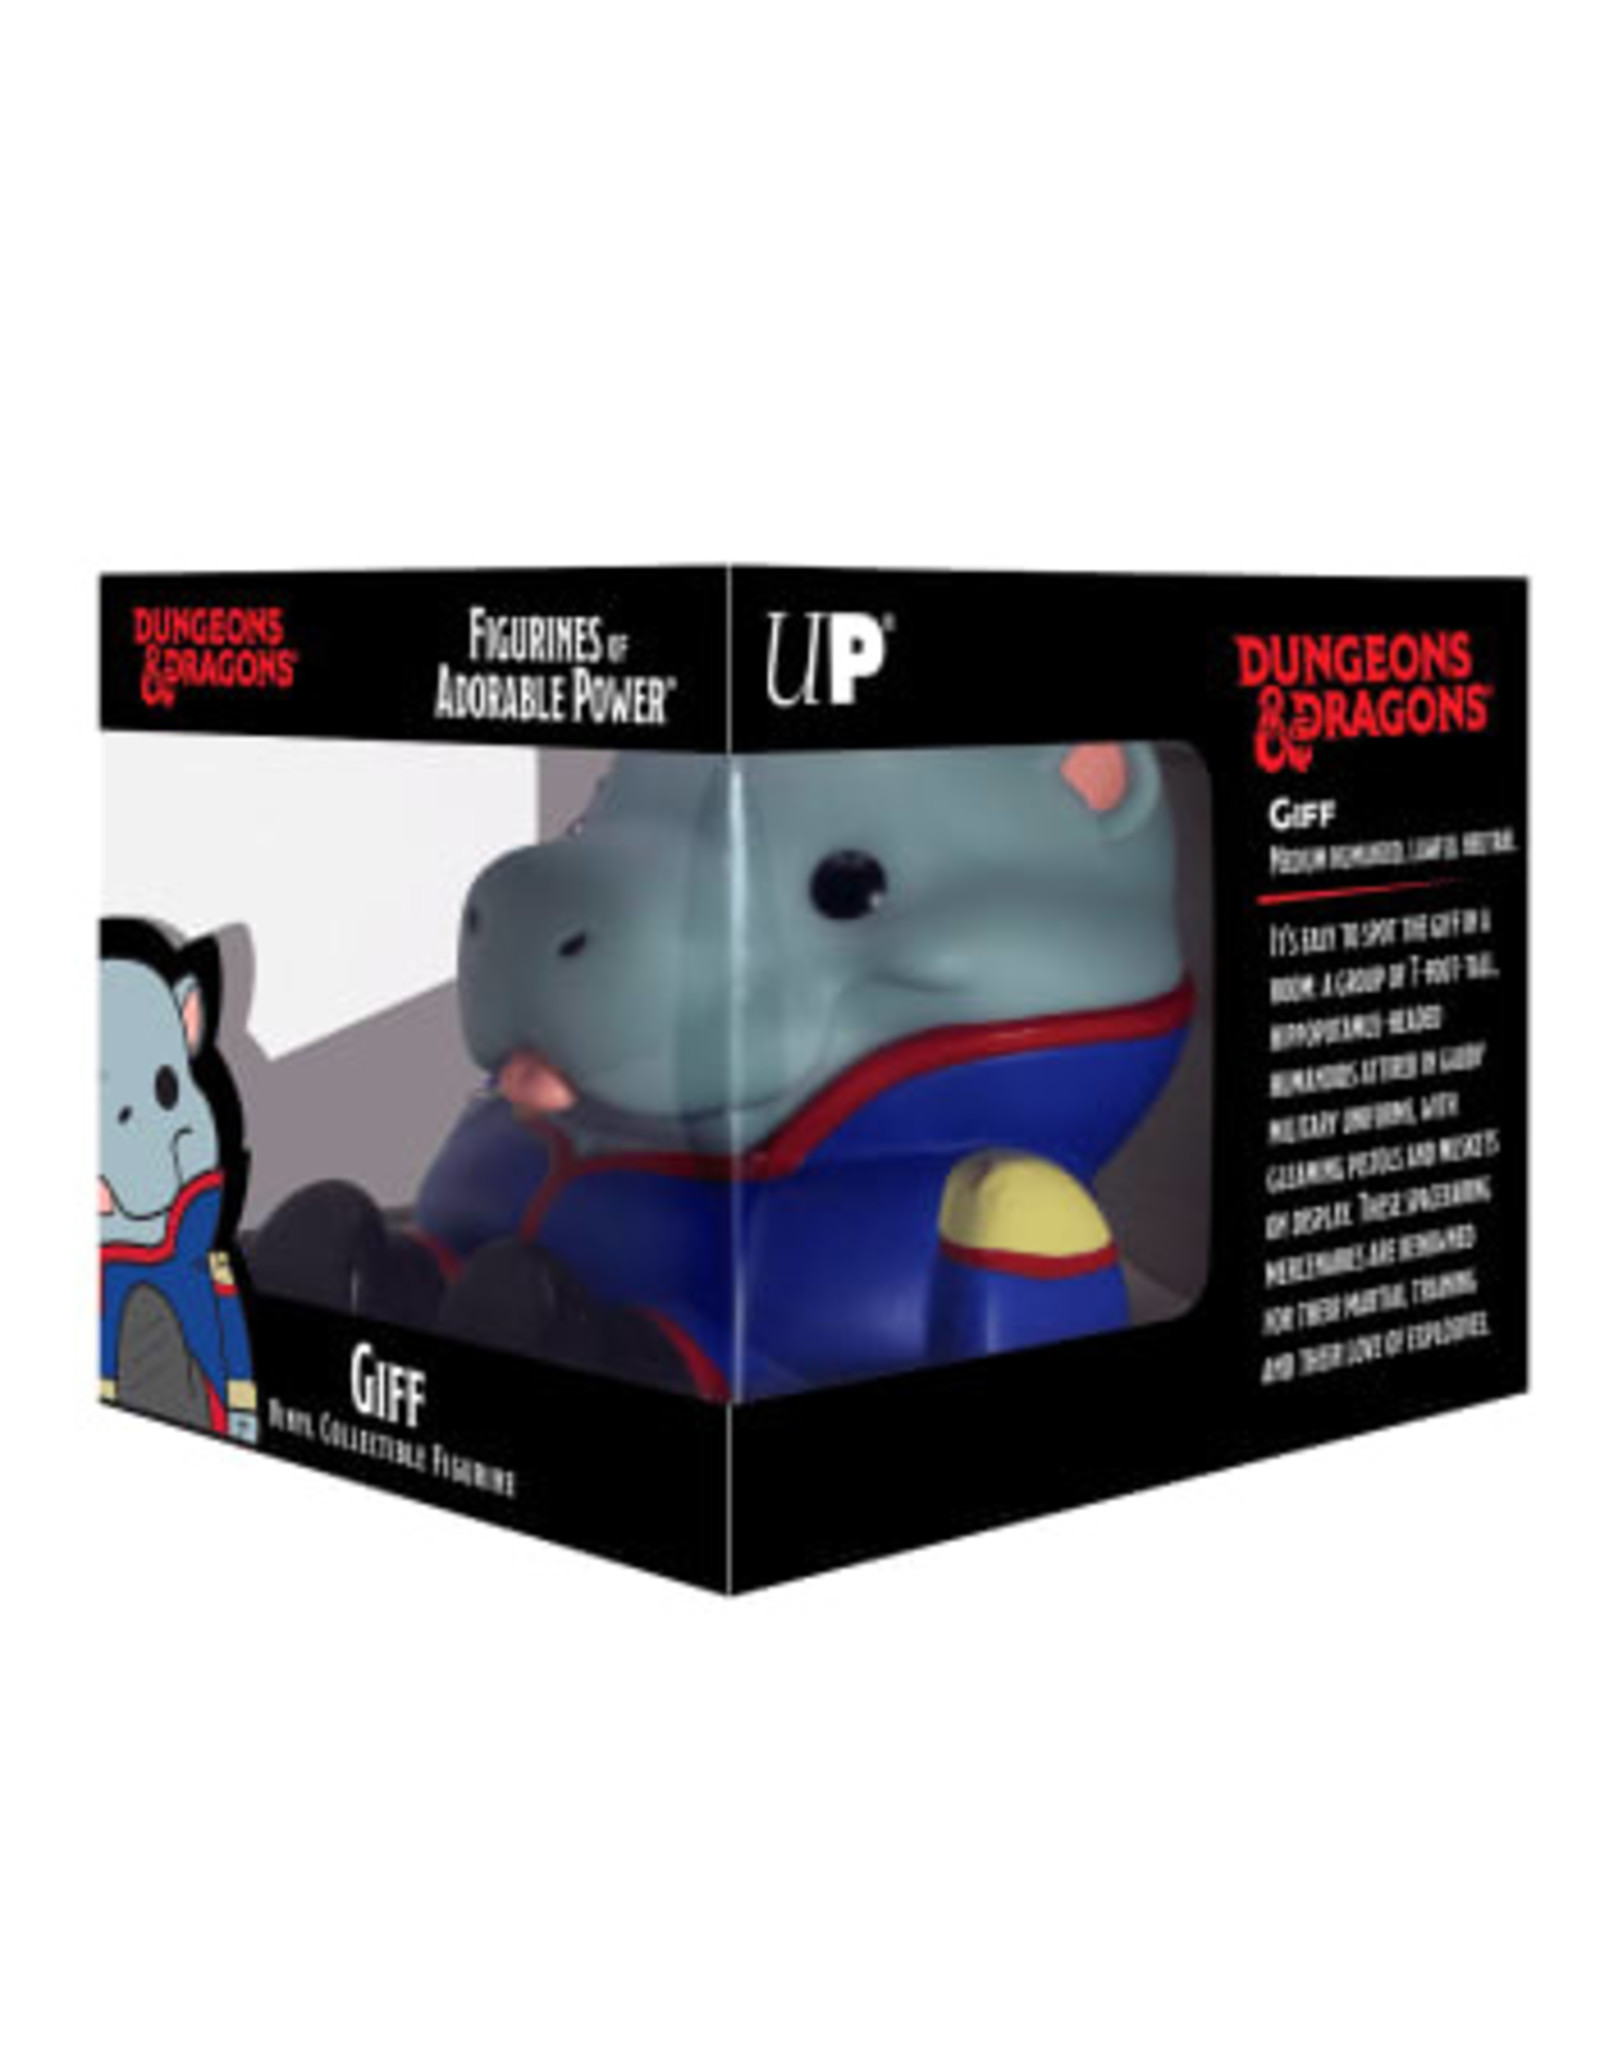 Ultra Pro Figurines of Adorable Power: D&D: Giff